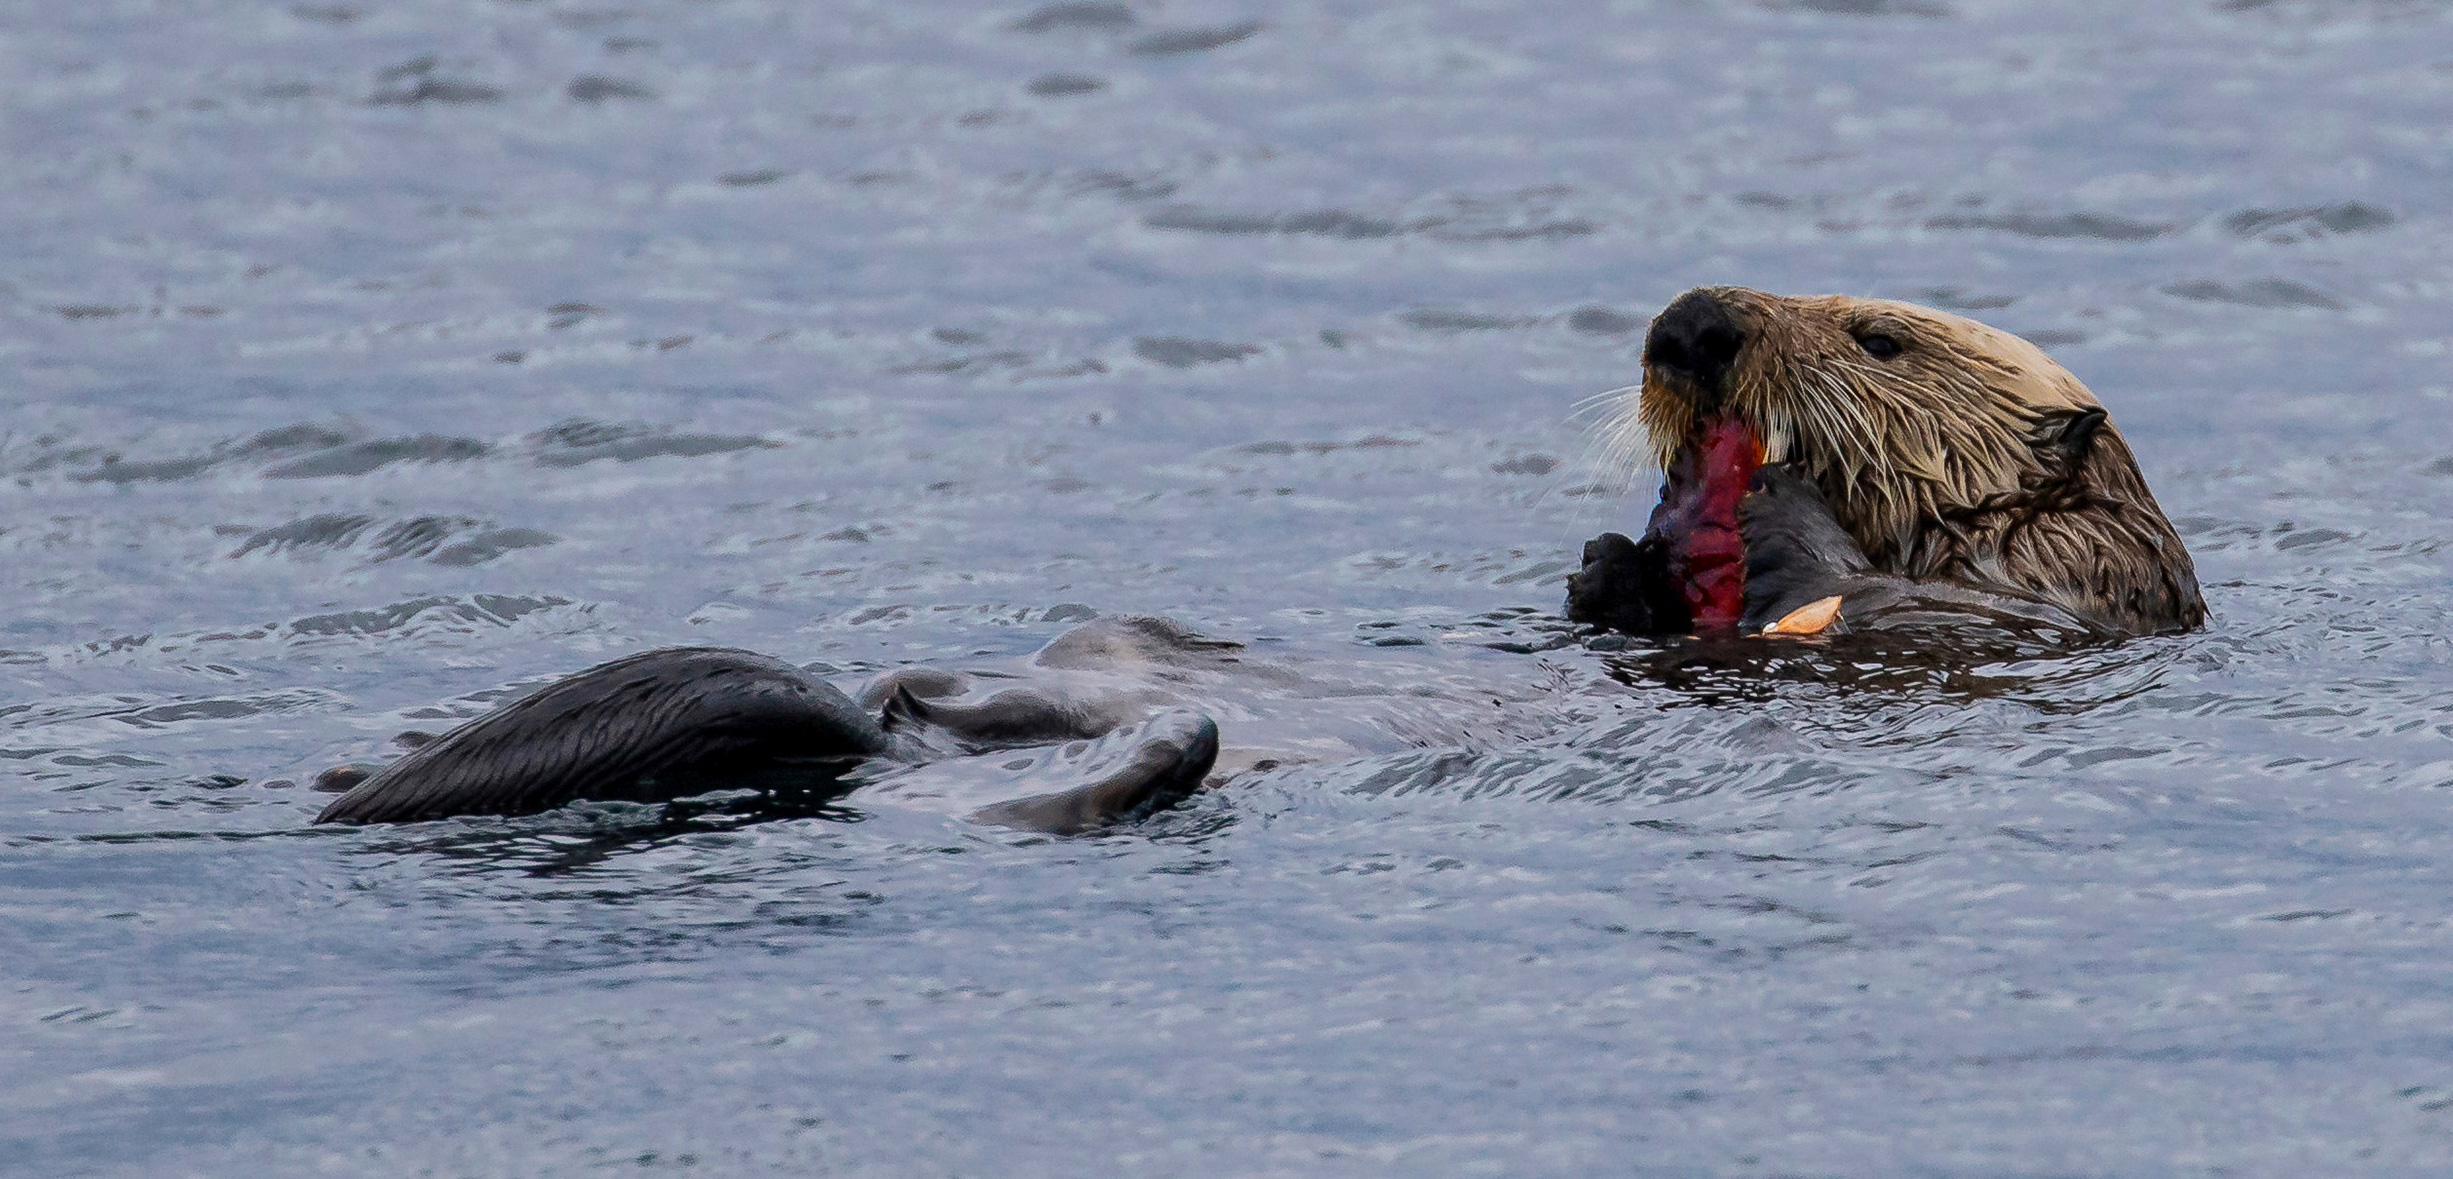 Sea otter floating in water eating a crab